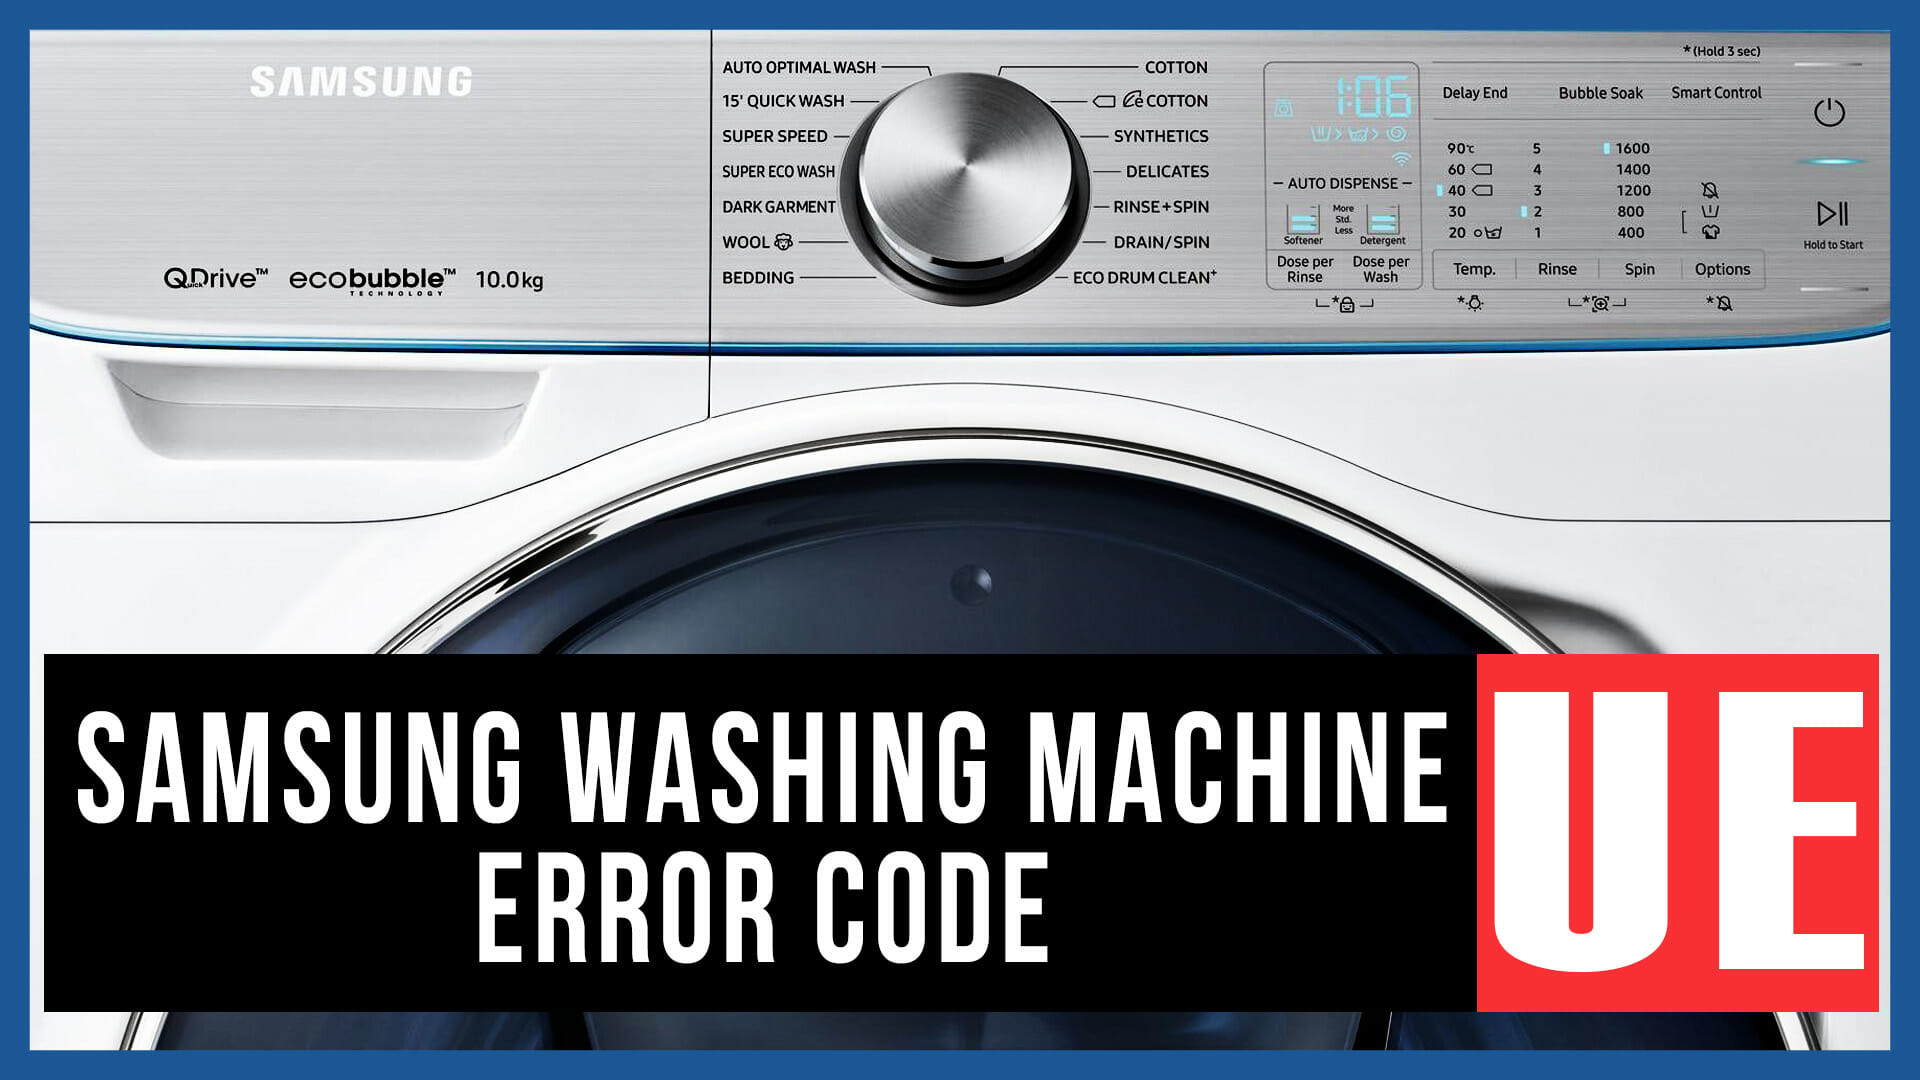 Samsung washing machine error code UE